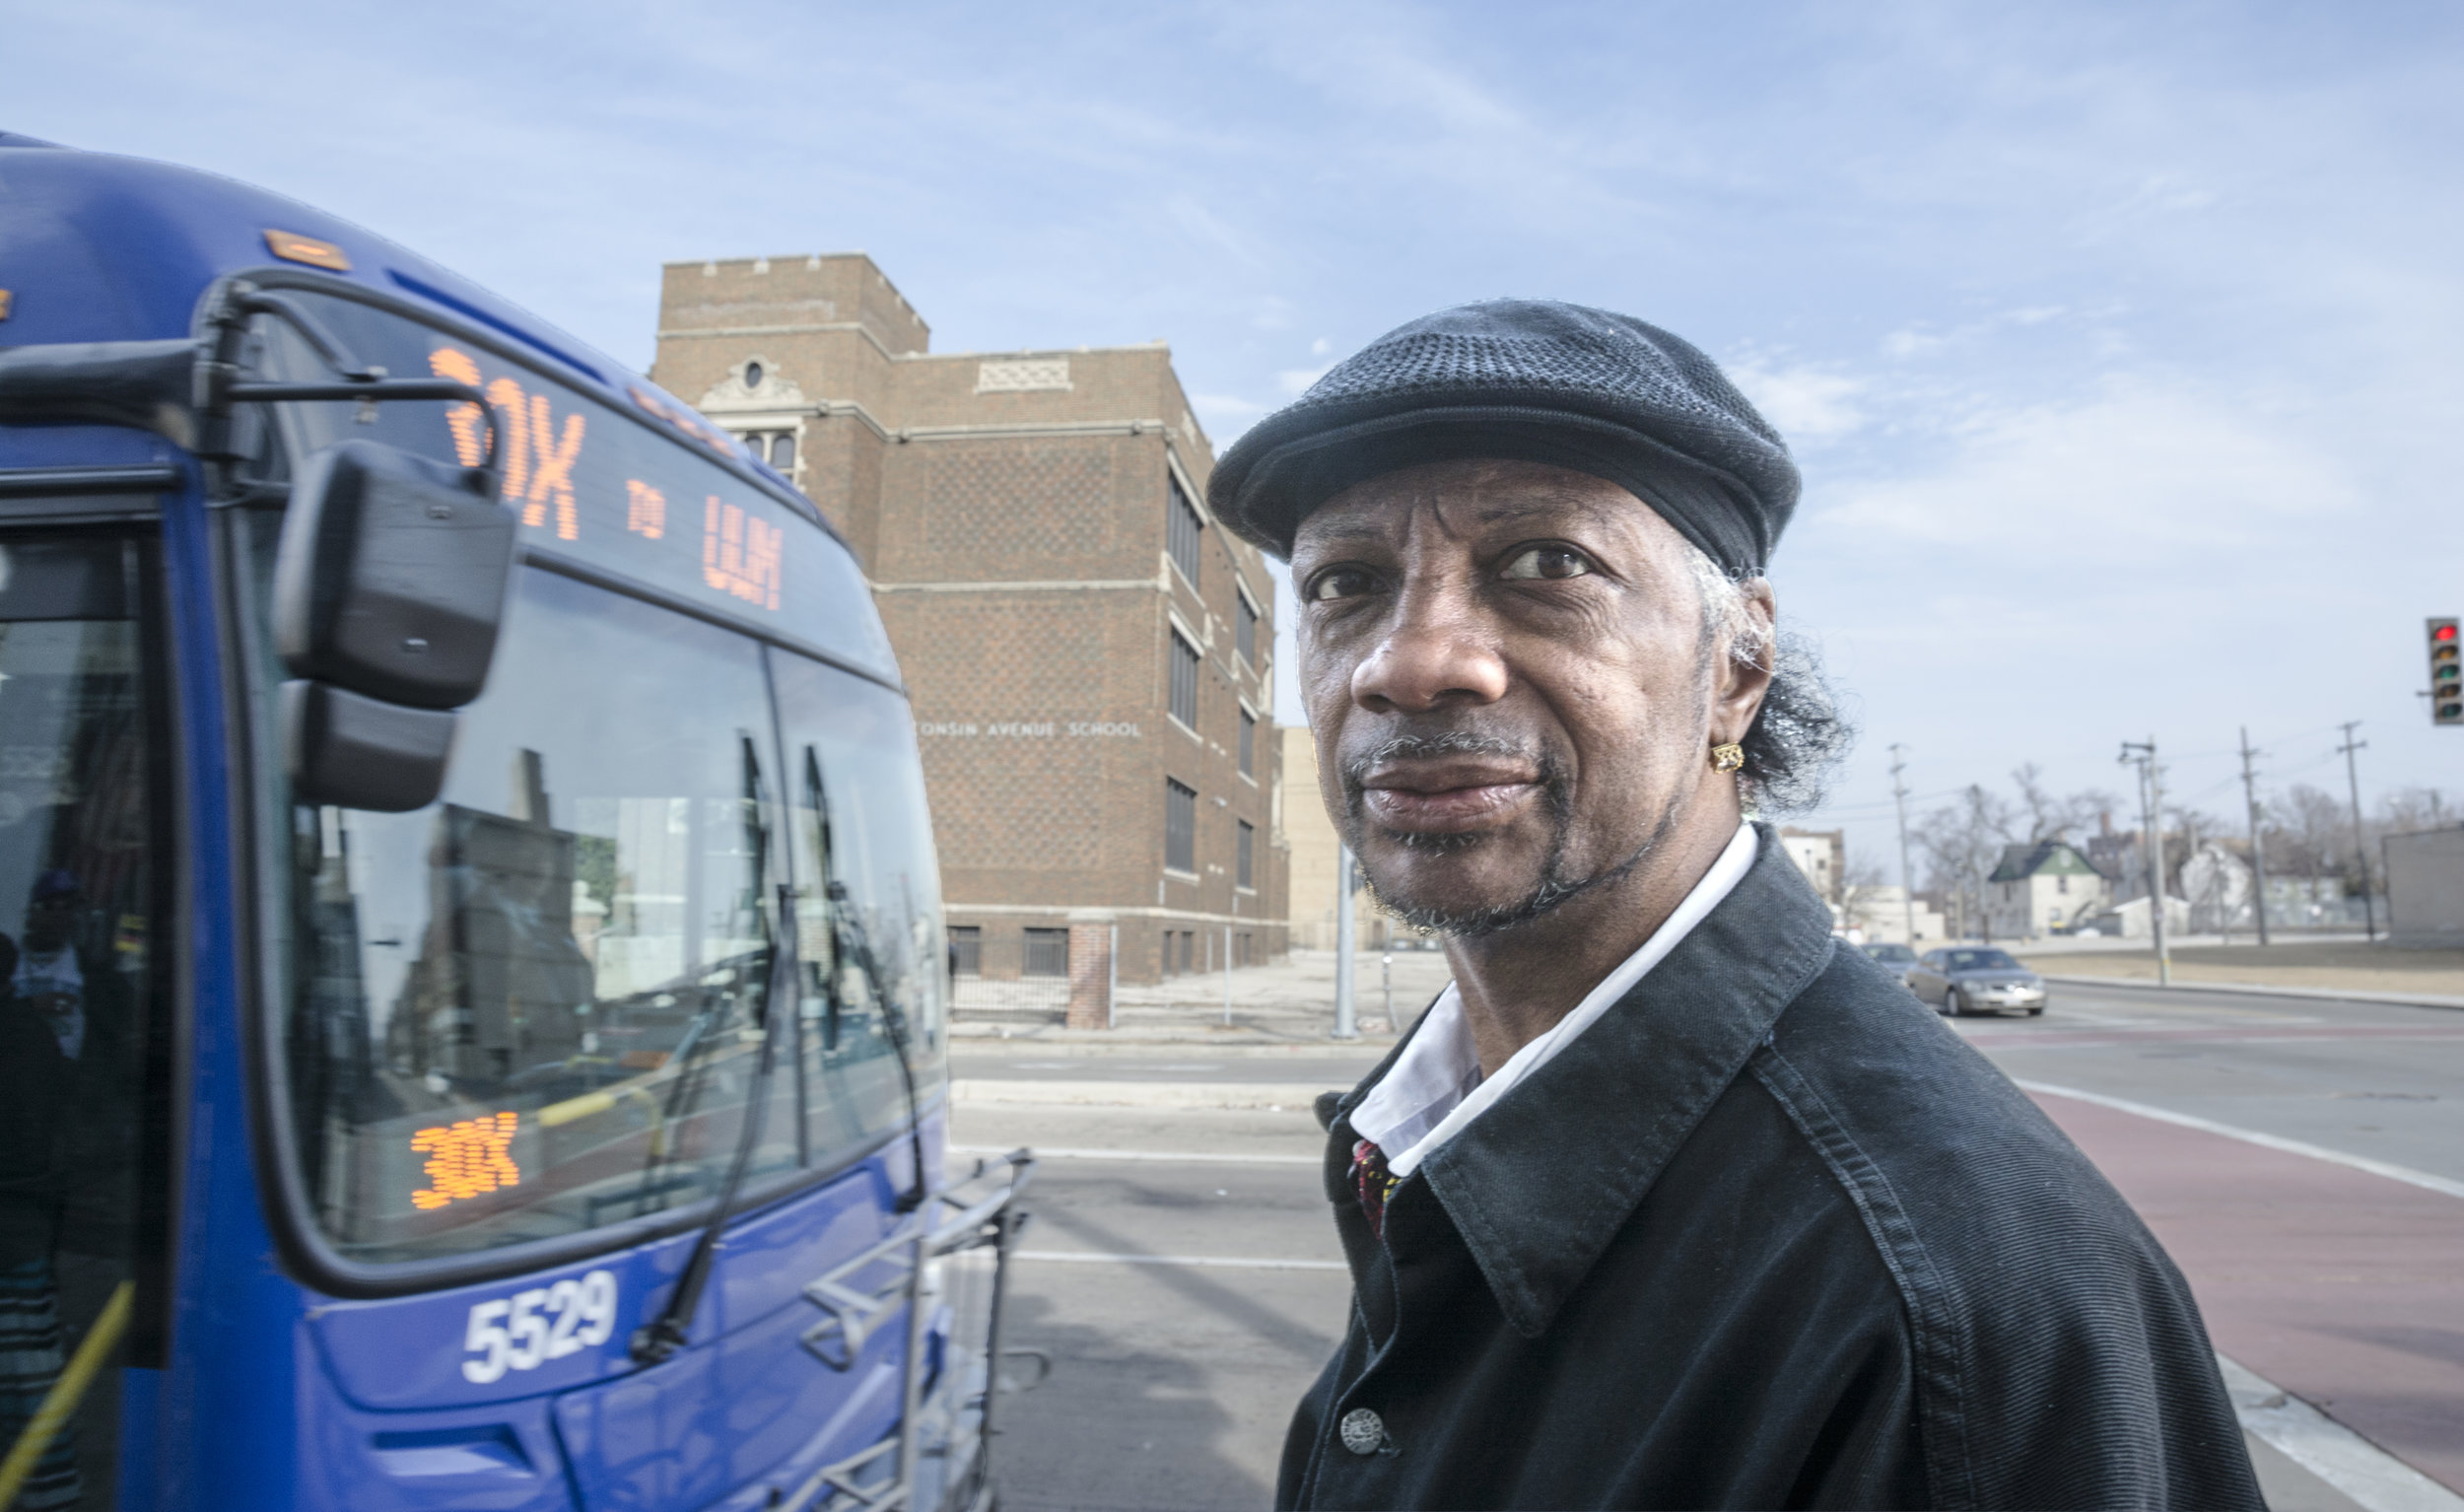 """Willis Jenkins, 53, was raised and still lives in Milwaukee's inner city. He works as a restaurant dishwasher and janitor. He regularly attends a Baptist Church. He told me, """"Everyday, I read my Bible. In fact, I can tell you something about every one of Jesus' disciples. They weren't all saints, believe me."""" A few years ago, Willis' daughter was killed in a car accident. He explained that his pain over that loss has brought him closer to God."""